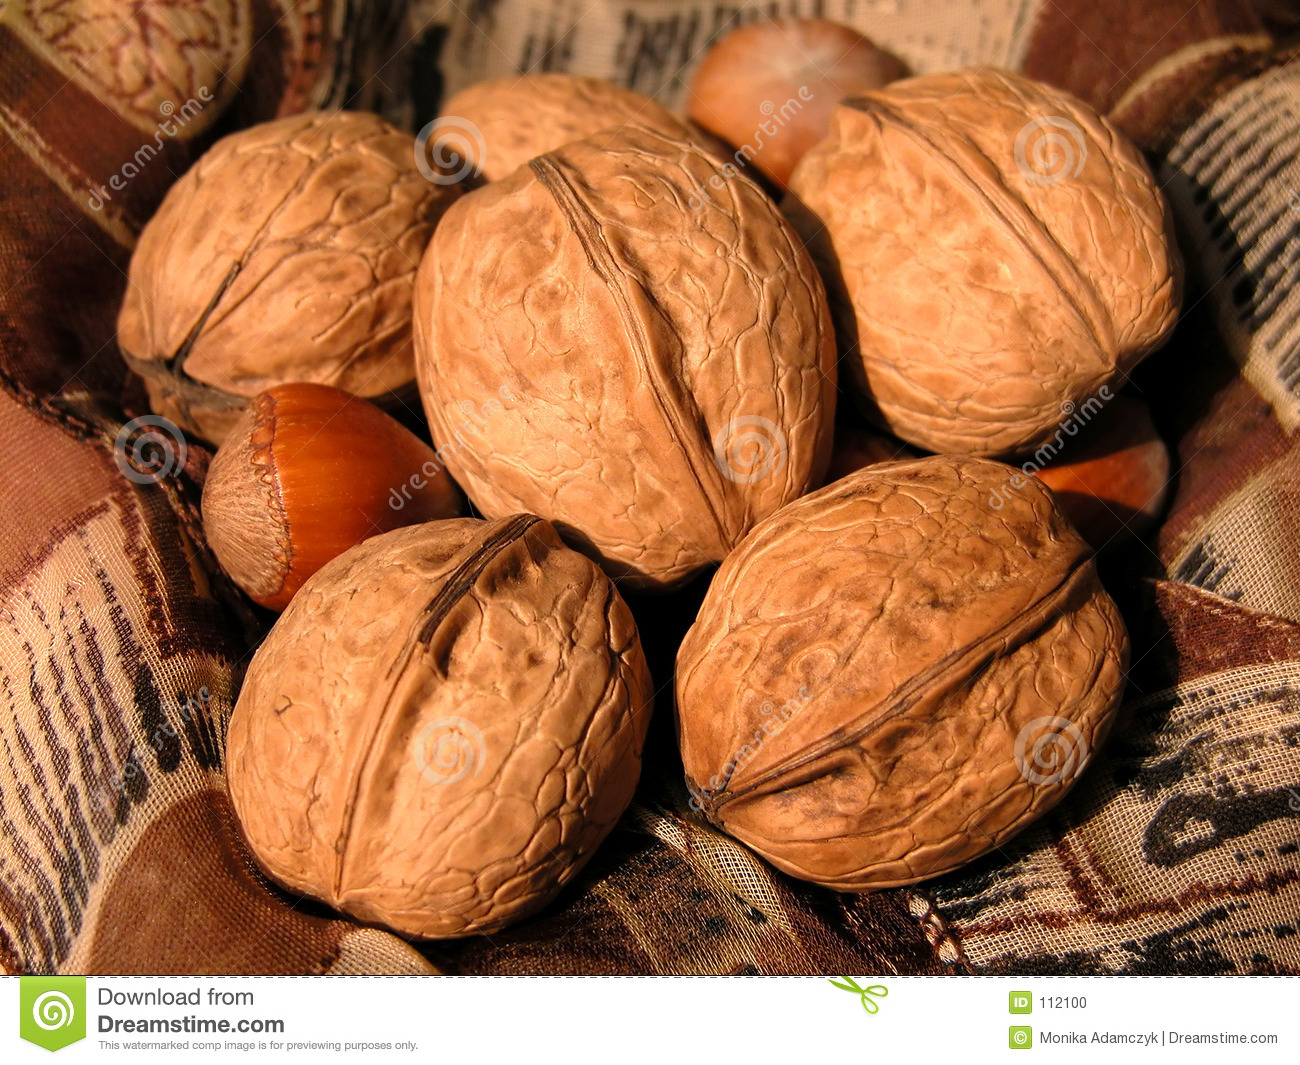 Download Nuts stock photo. Image of superfood, walnuts, crust, brown - 112100